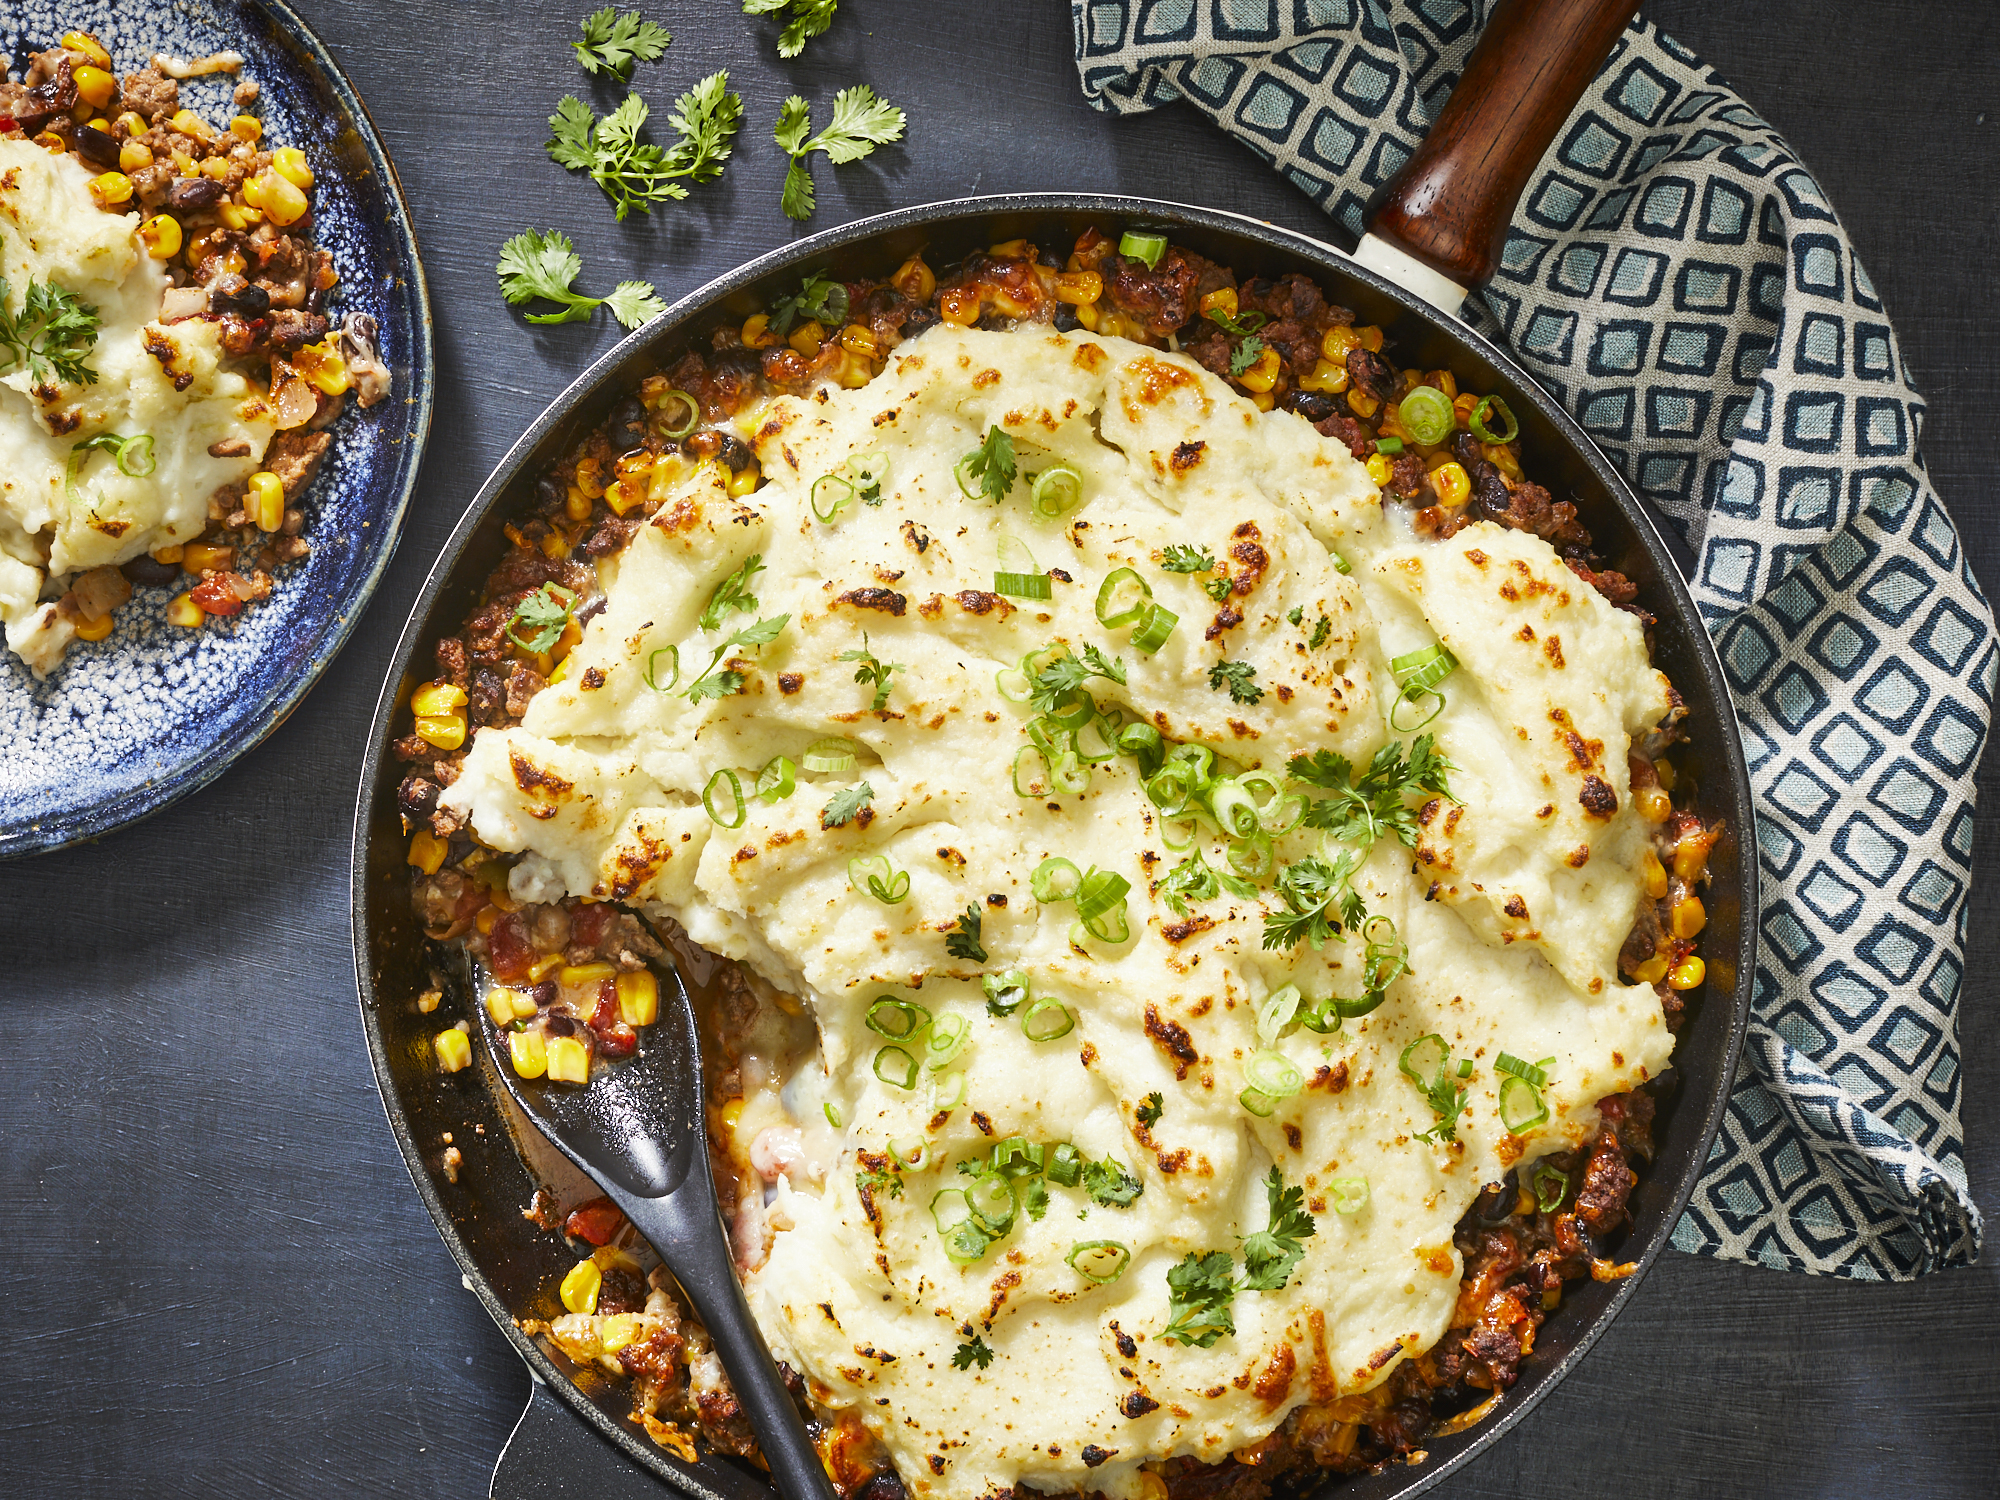 Easy Tex-Mex Shepherd's Pie